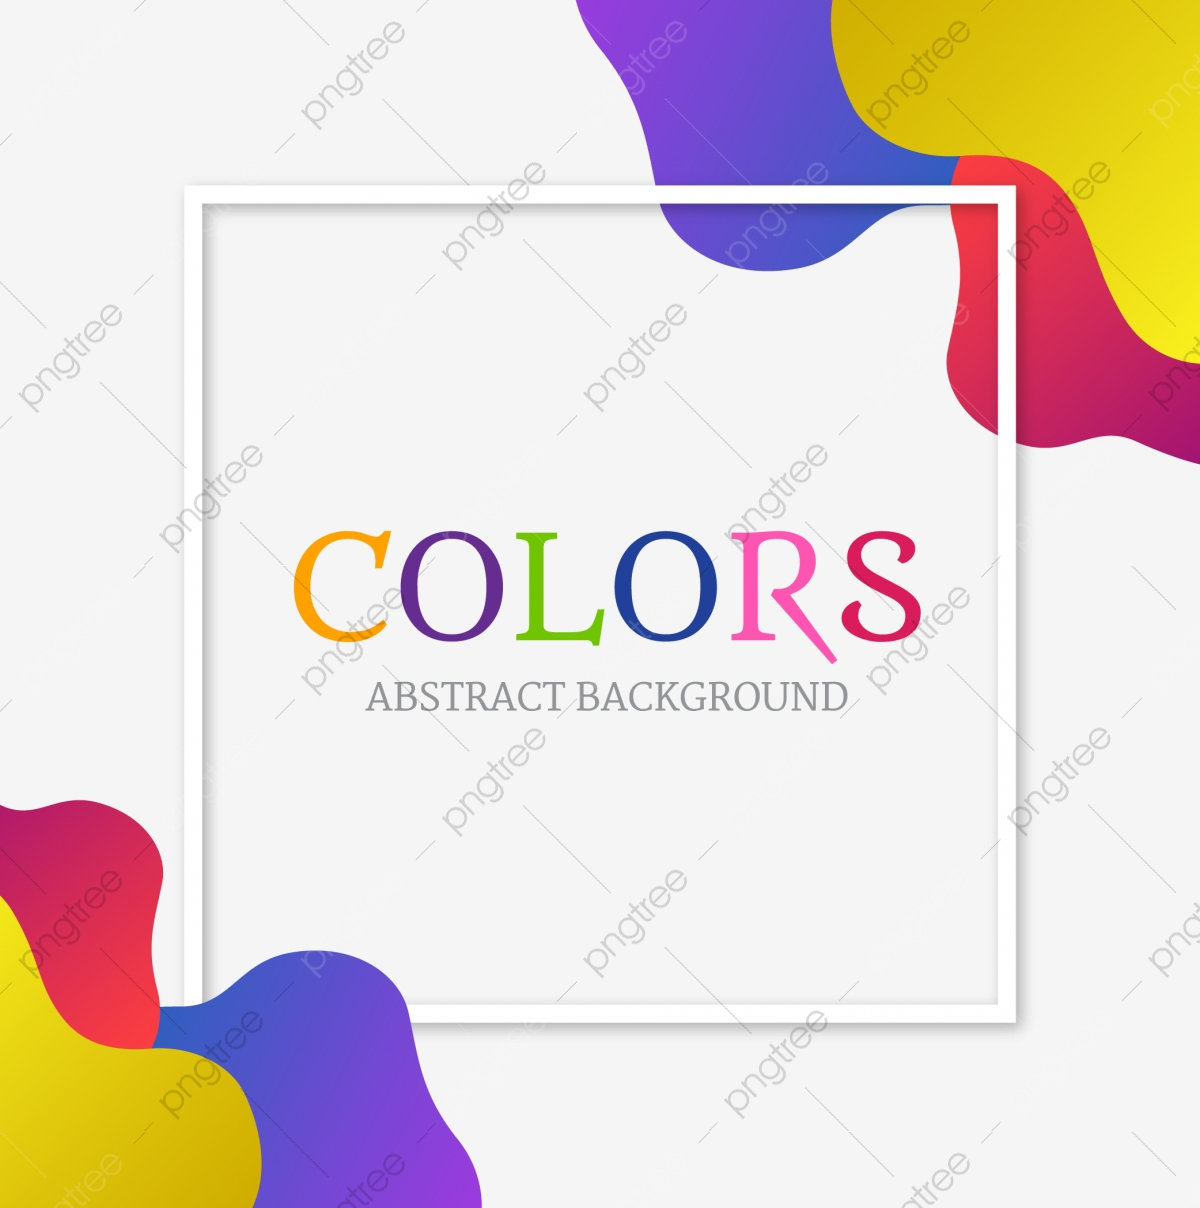 Dynamic Colorful Vibrant Abstract Background Background